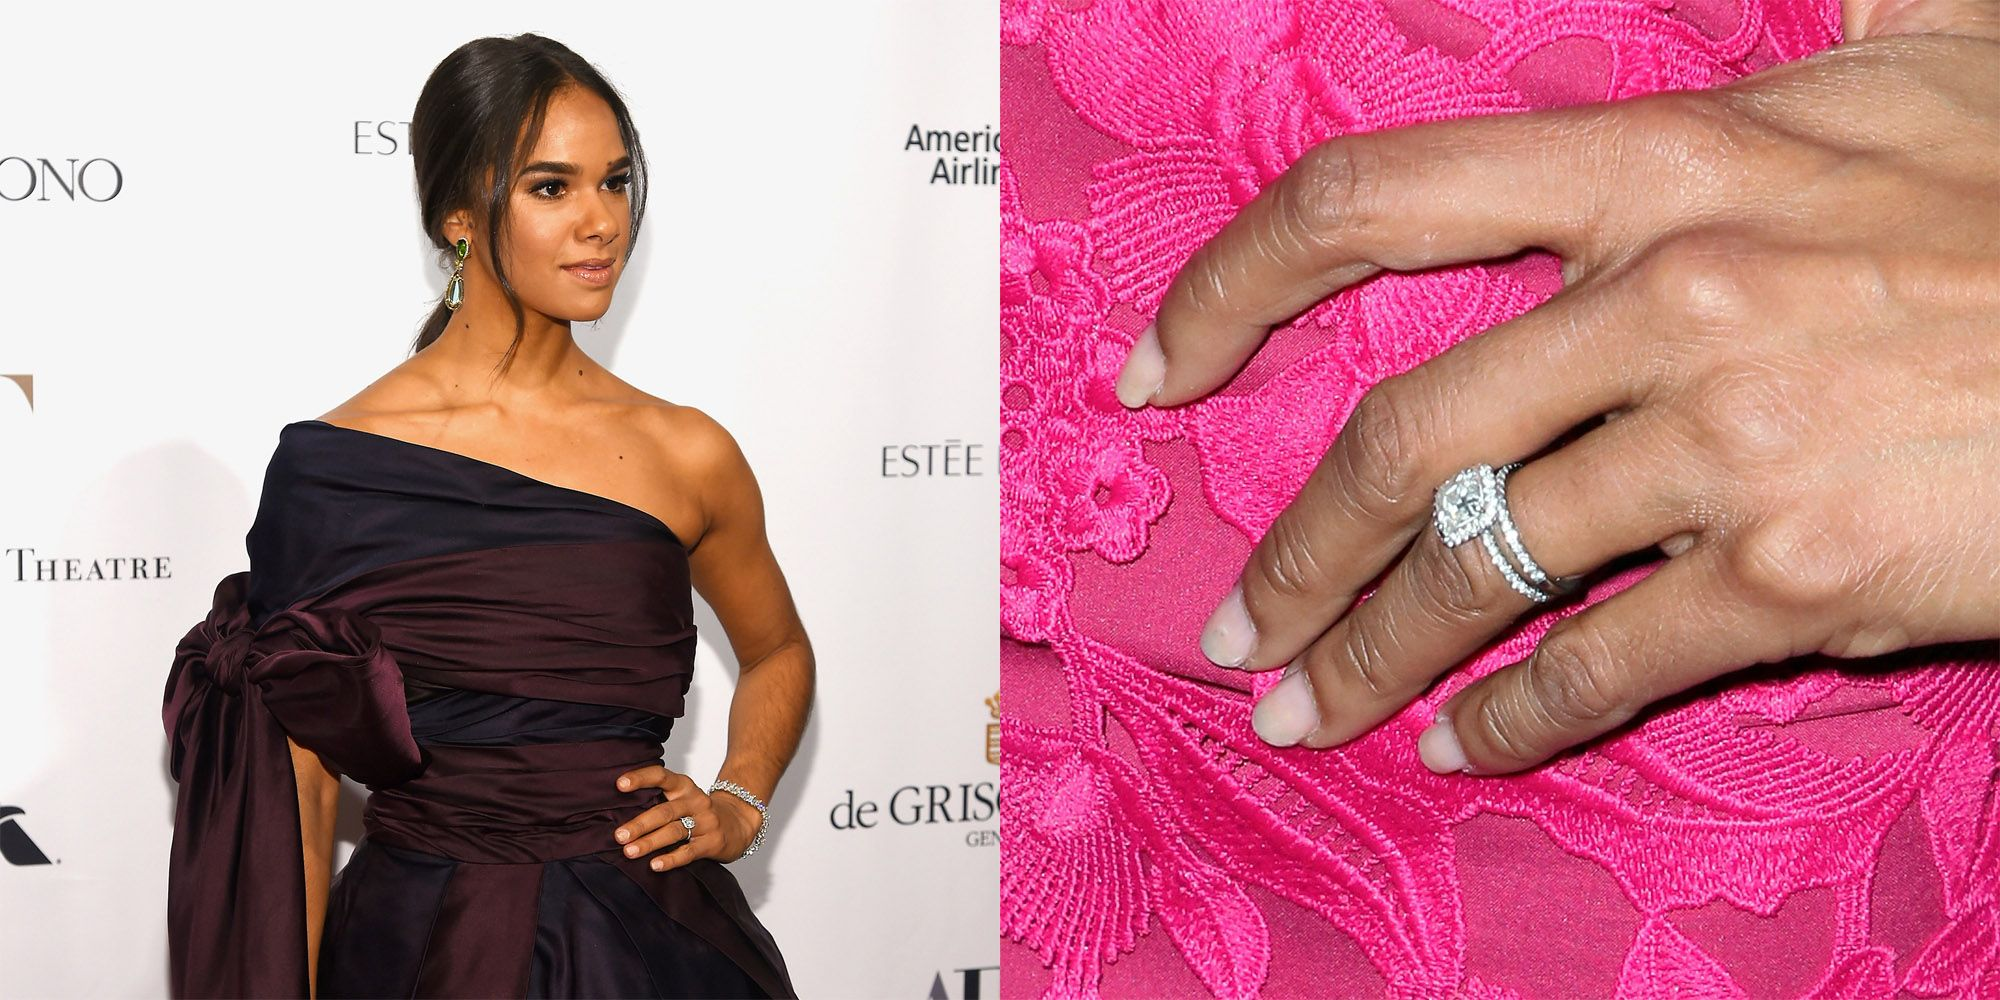 Stunning Celebrity Engagement Rings - Biggest and Best Engagement ...